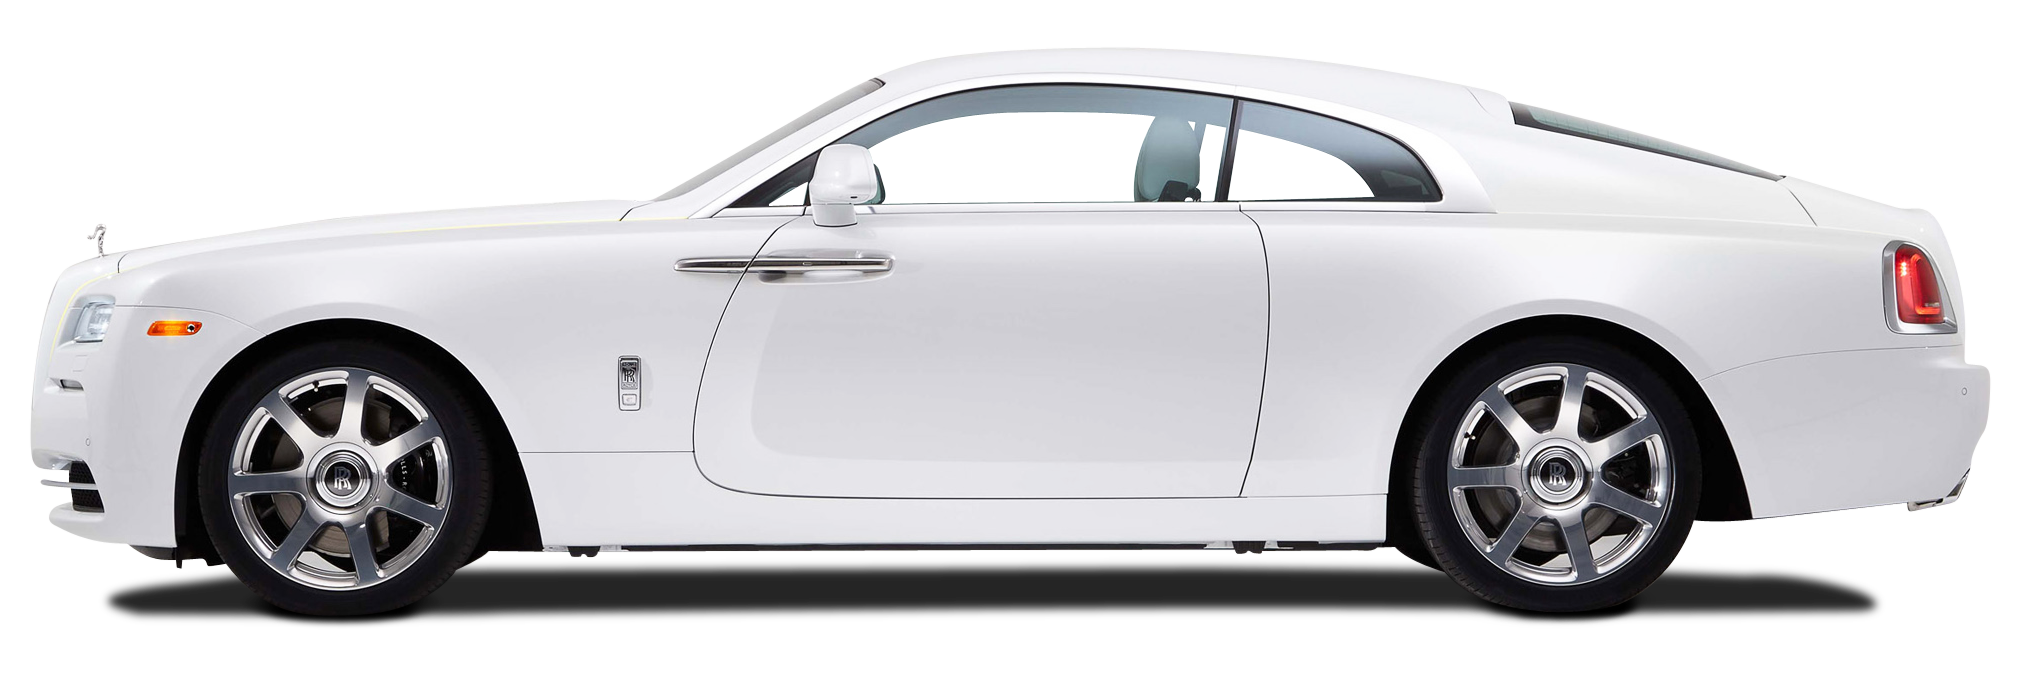 Download White Rolls Royce Wraith Car Png Image For Free Rolls Royce Rolls Royce Cars Wraith Car